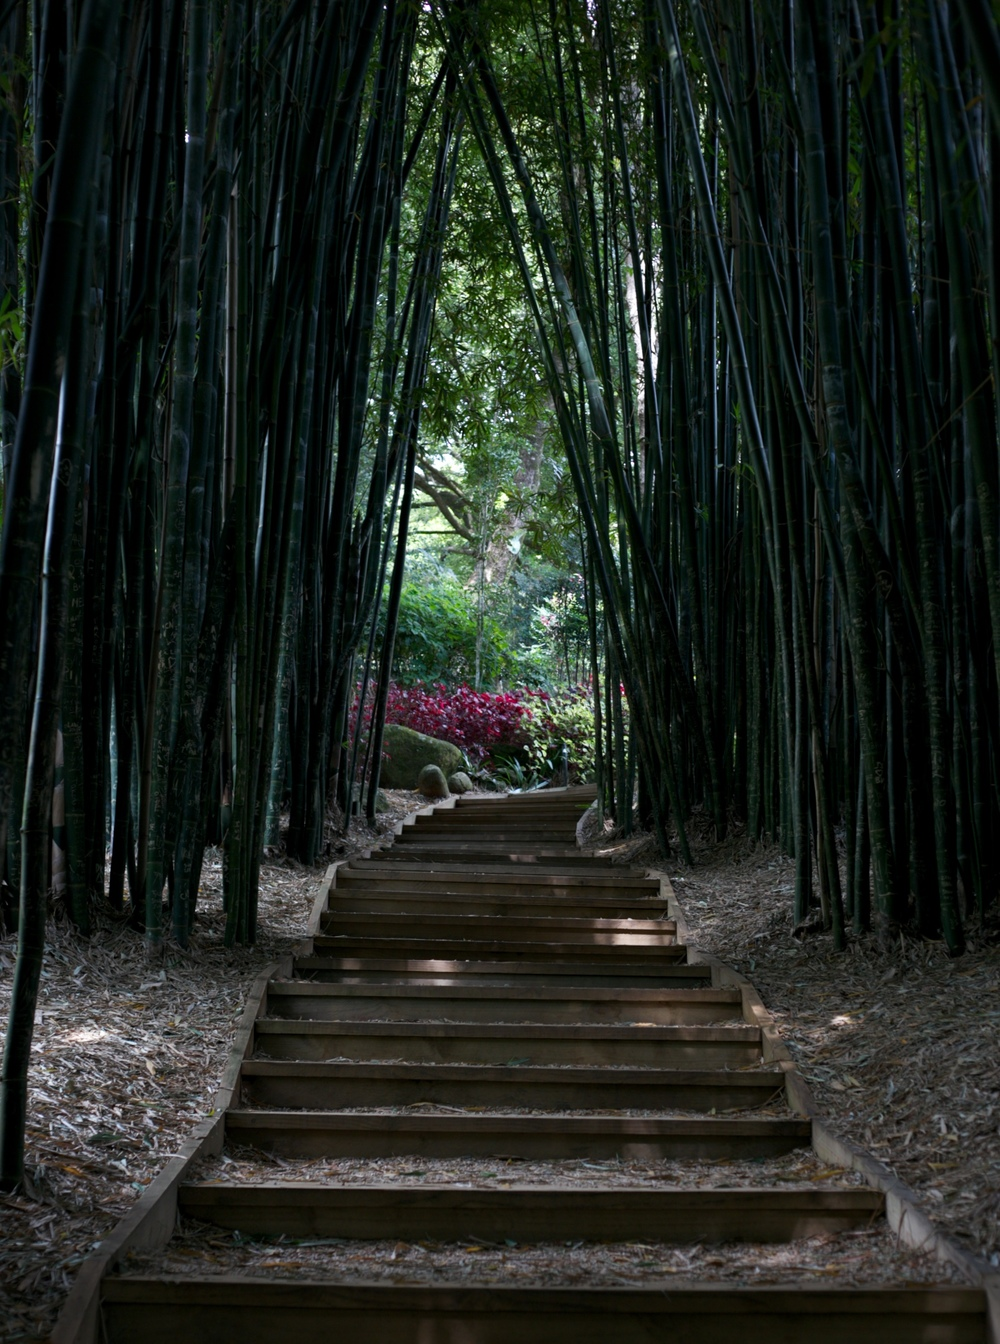 A corridor through bamboo shoots - at Crystal Castle.